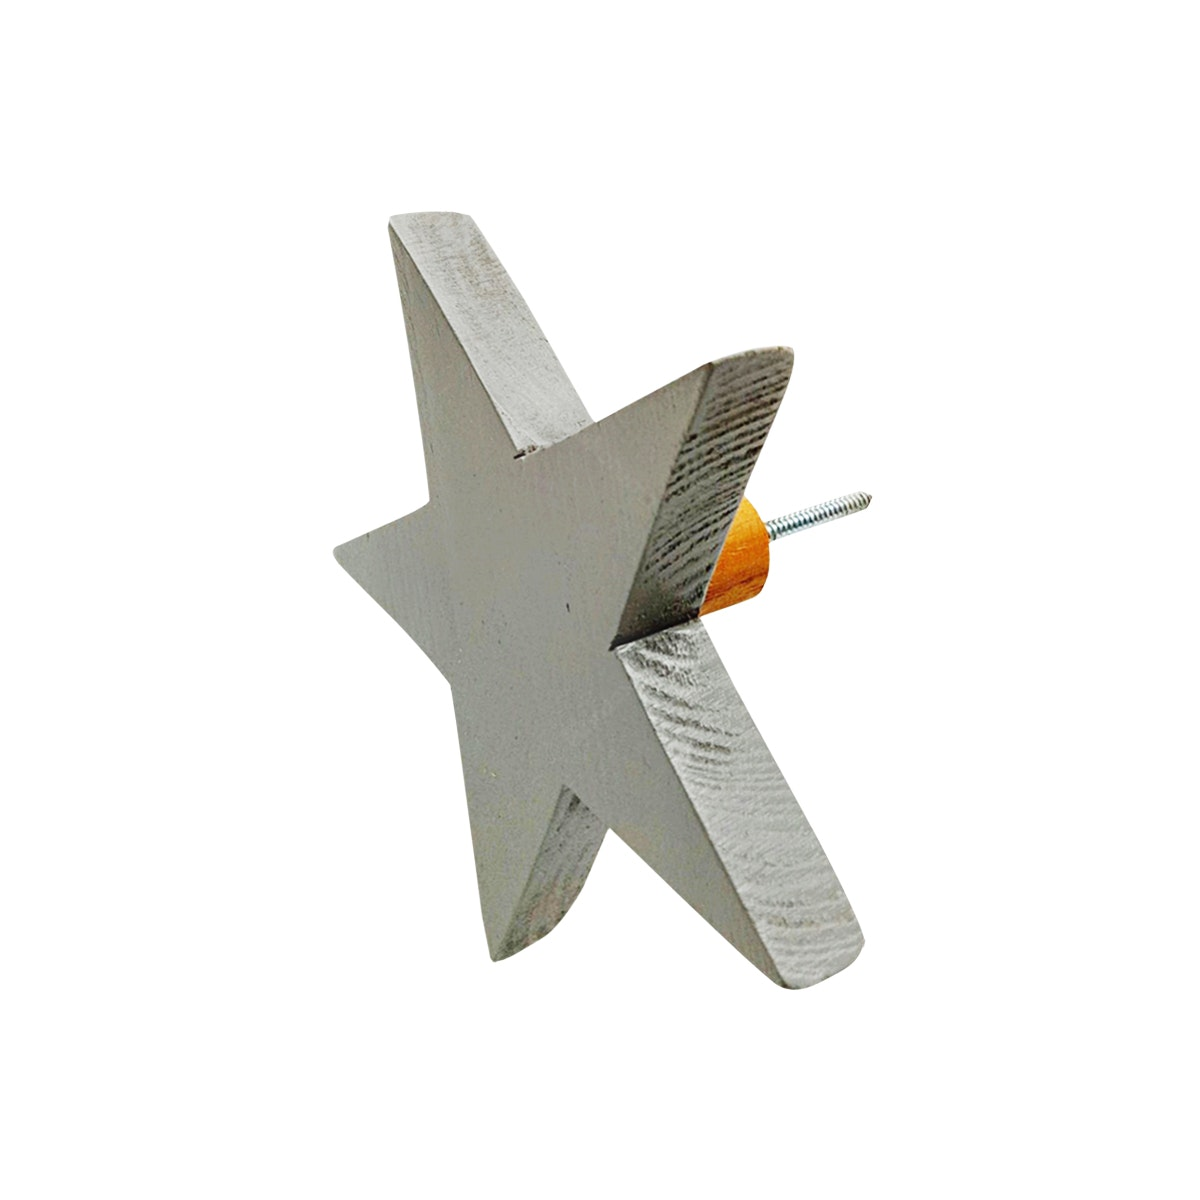 Stiletto Living Wall Hook - Star (Gantungan Dinding) / Kuning